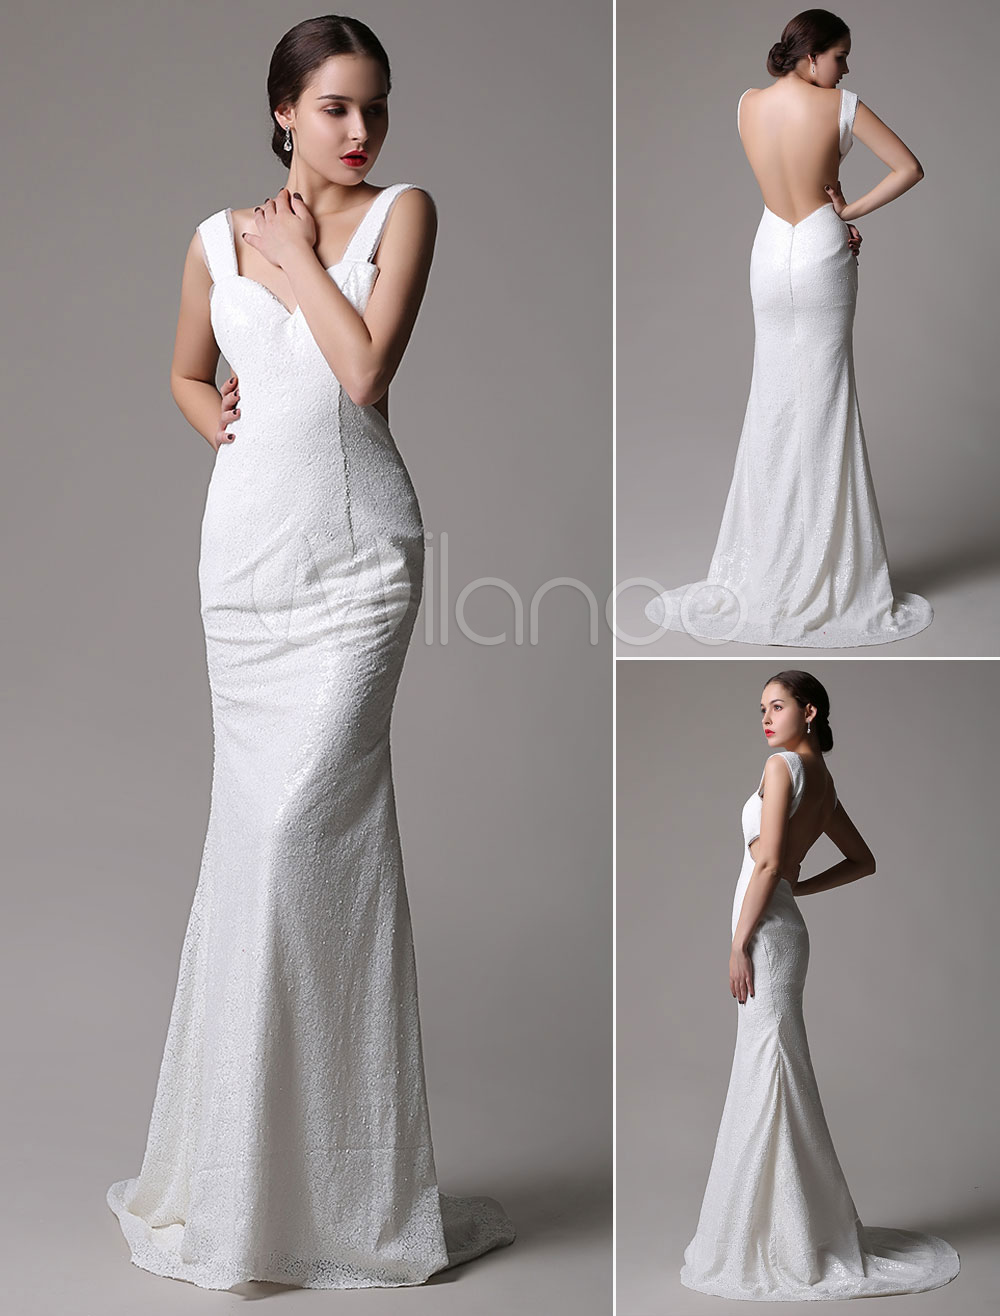 Sexy Ivory Strapy Open Back Mermaid Sequin Dress Cutouts and Subtle Train